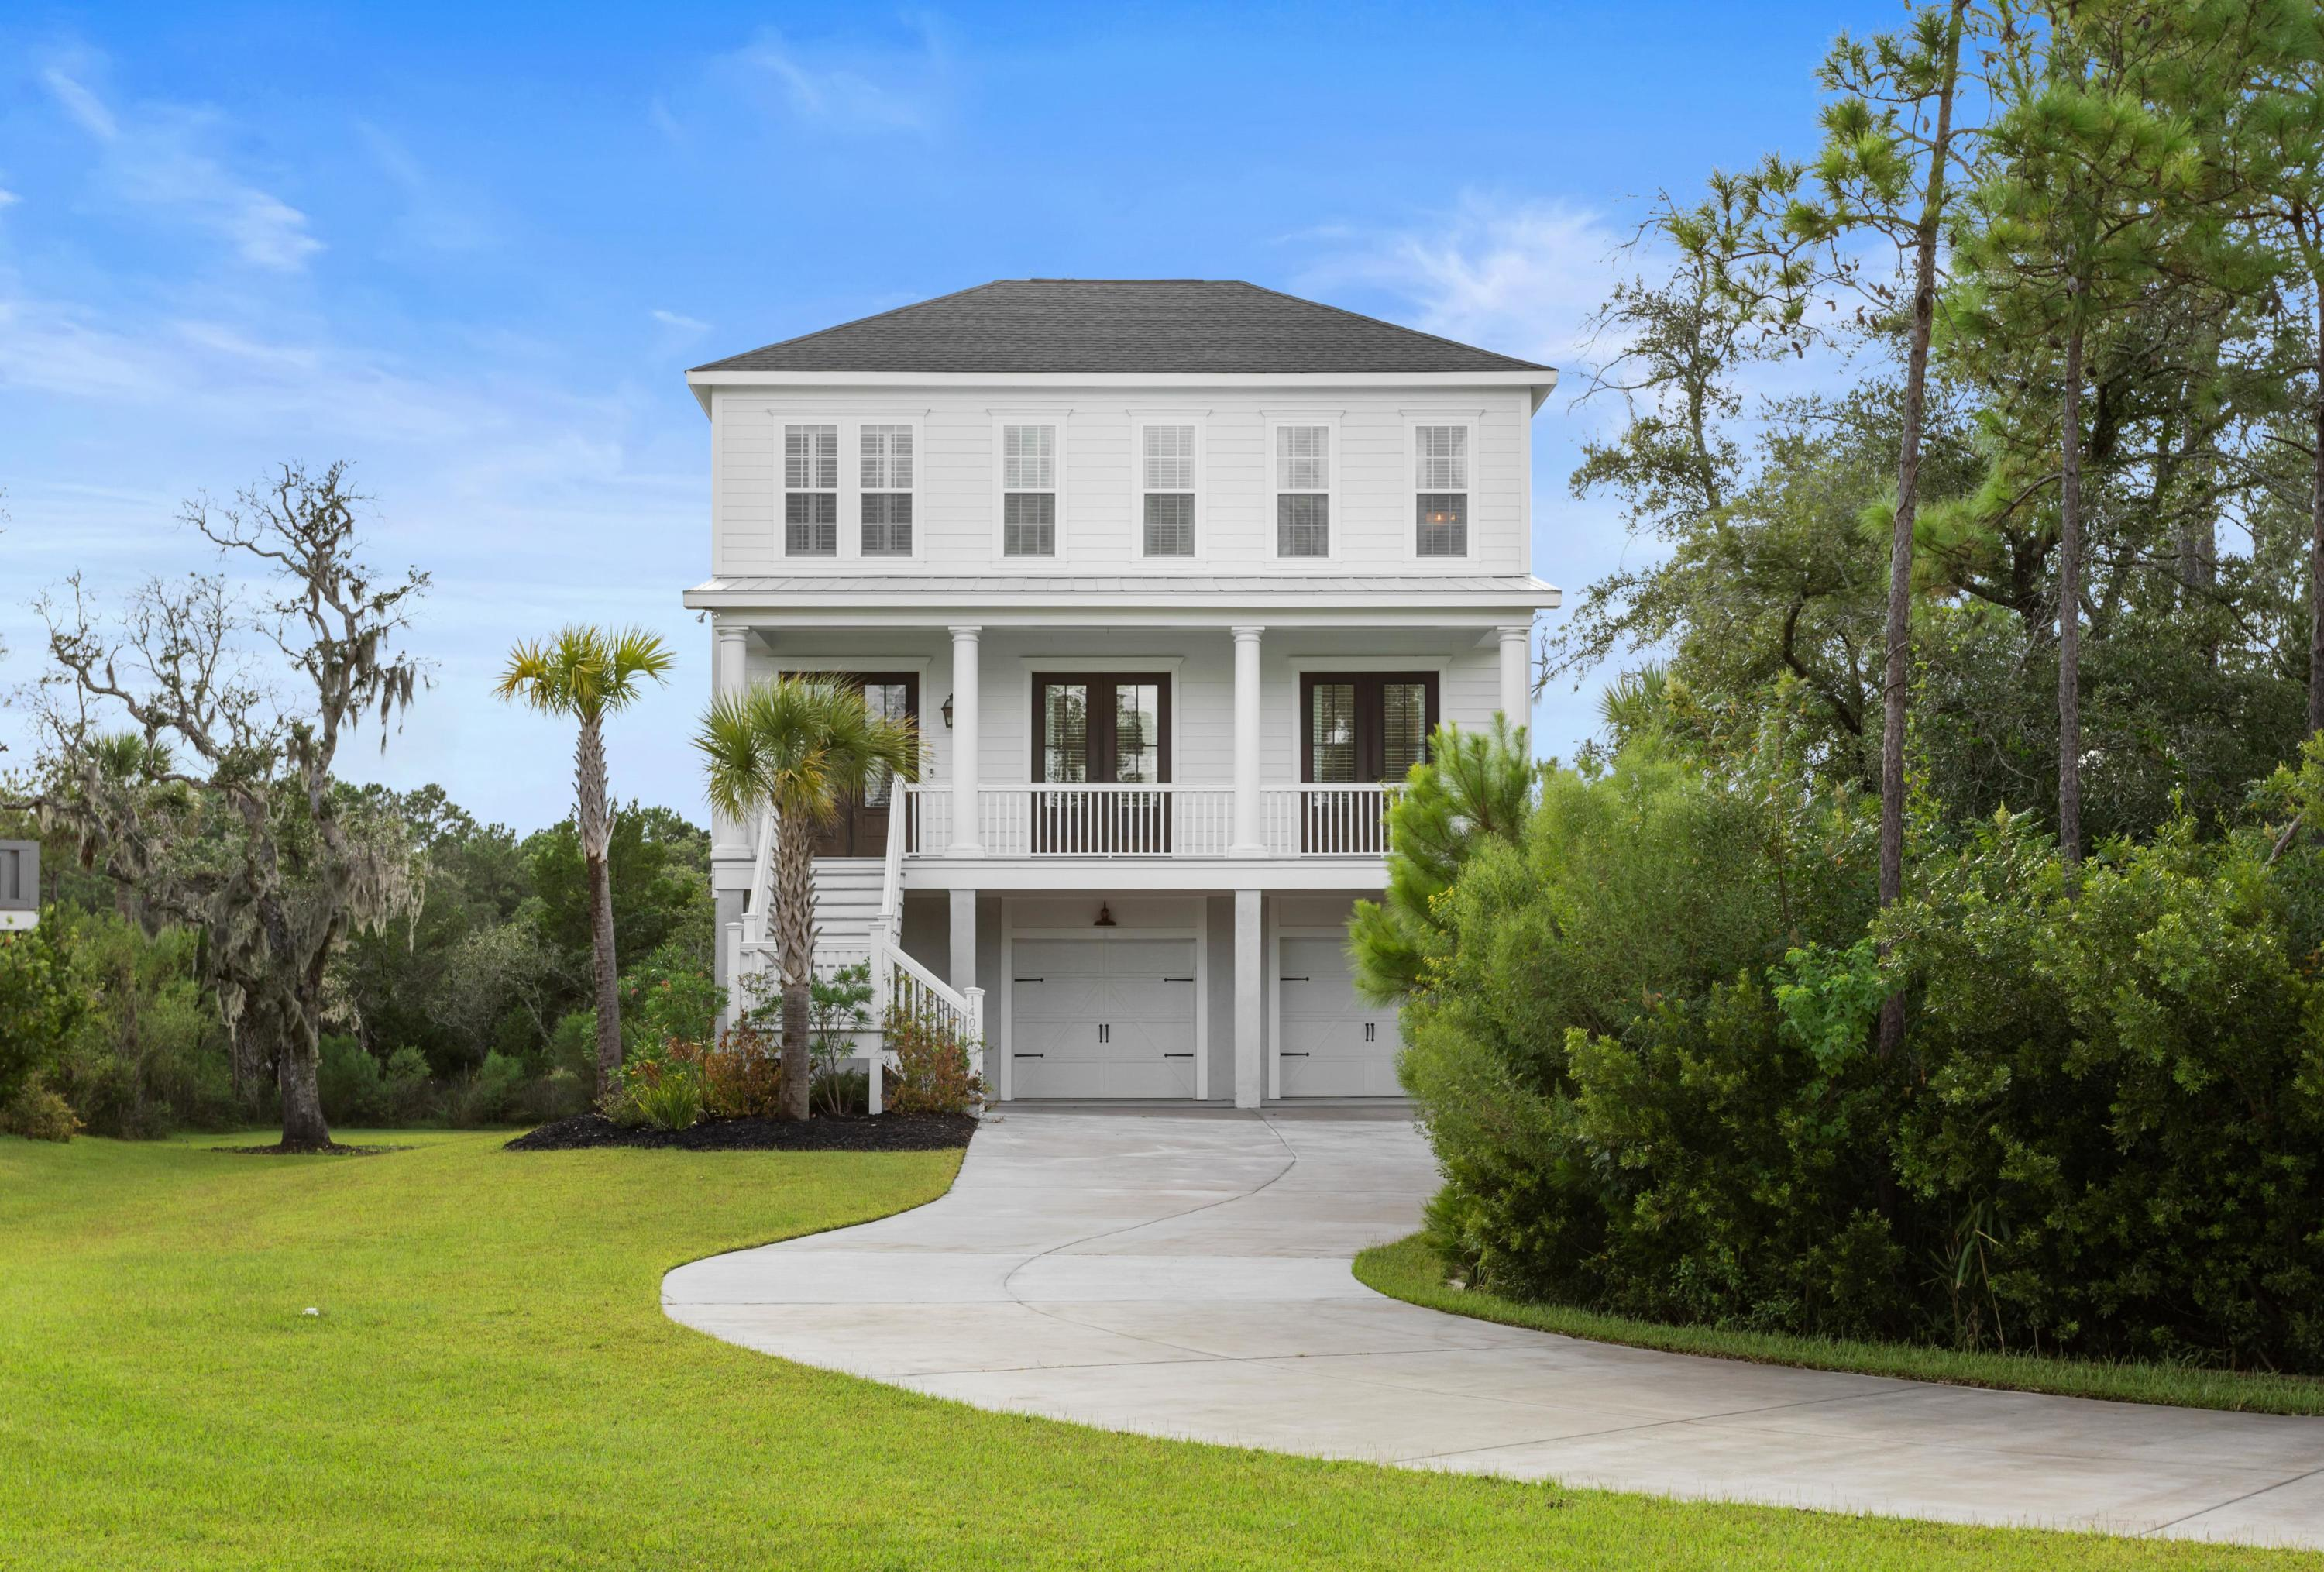 Stratton by the Sound Homes For Sale - 1400 Stratton, Mount Pleasant, SC - 49